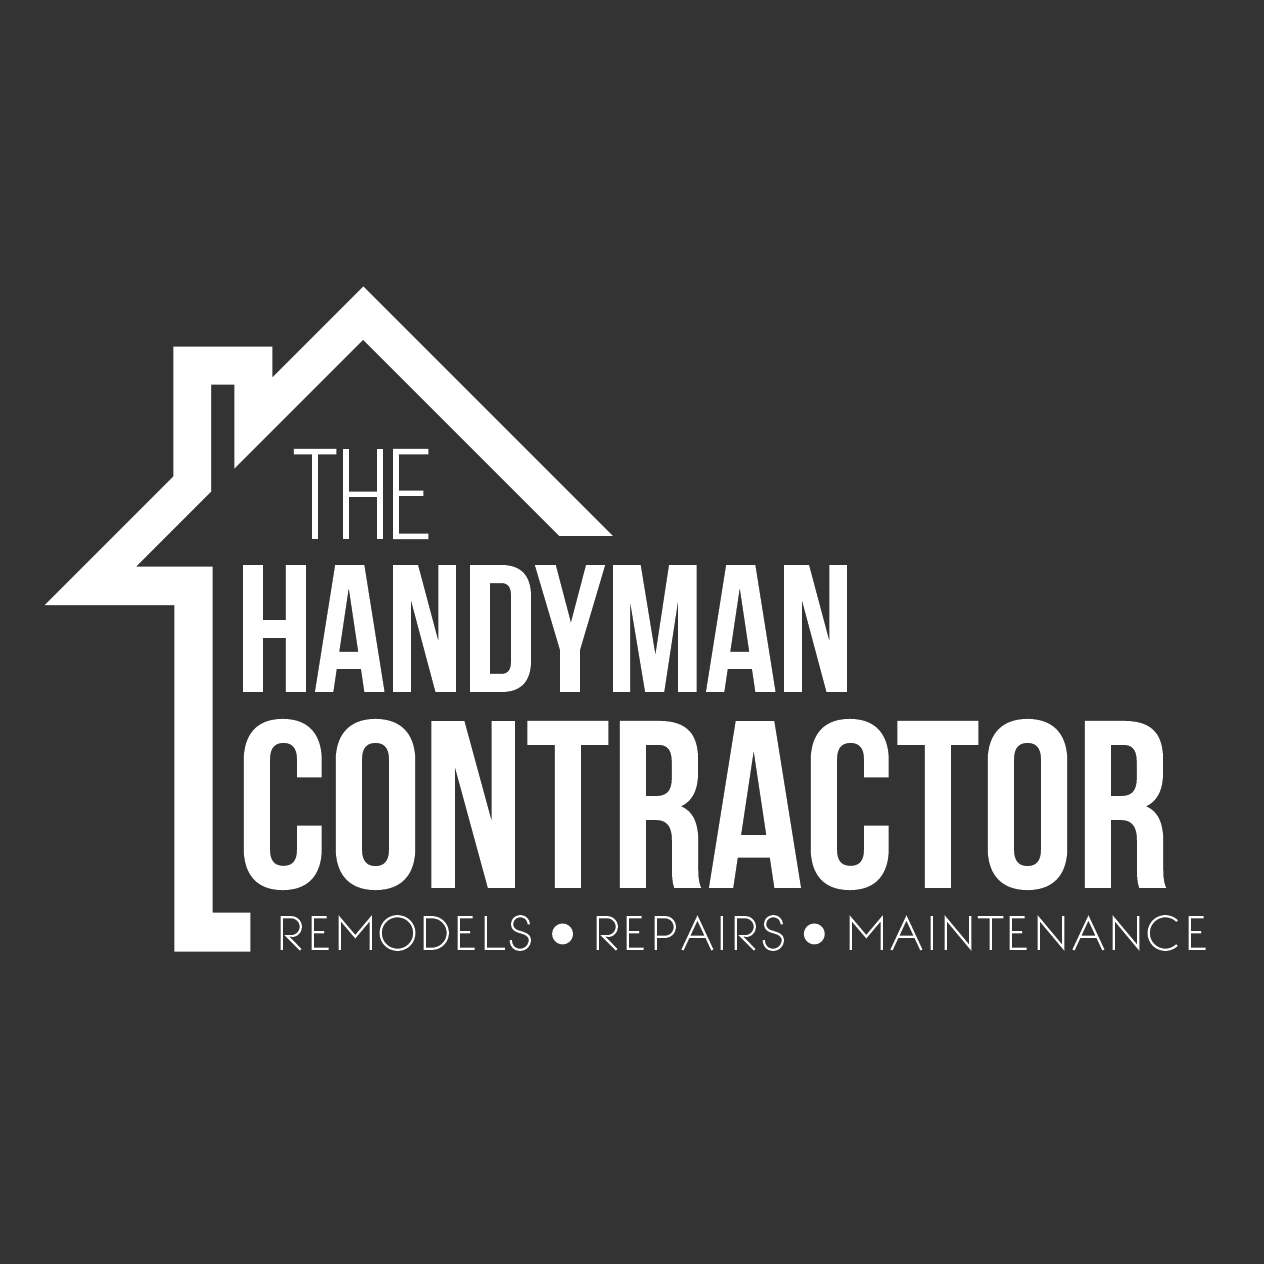 Logo Design For Home Improvement Company. #logo #contractor #design  #graphicdesign #modern